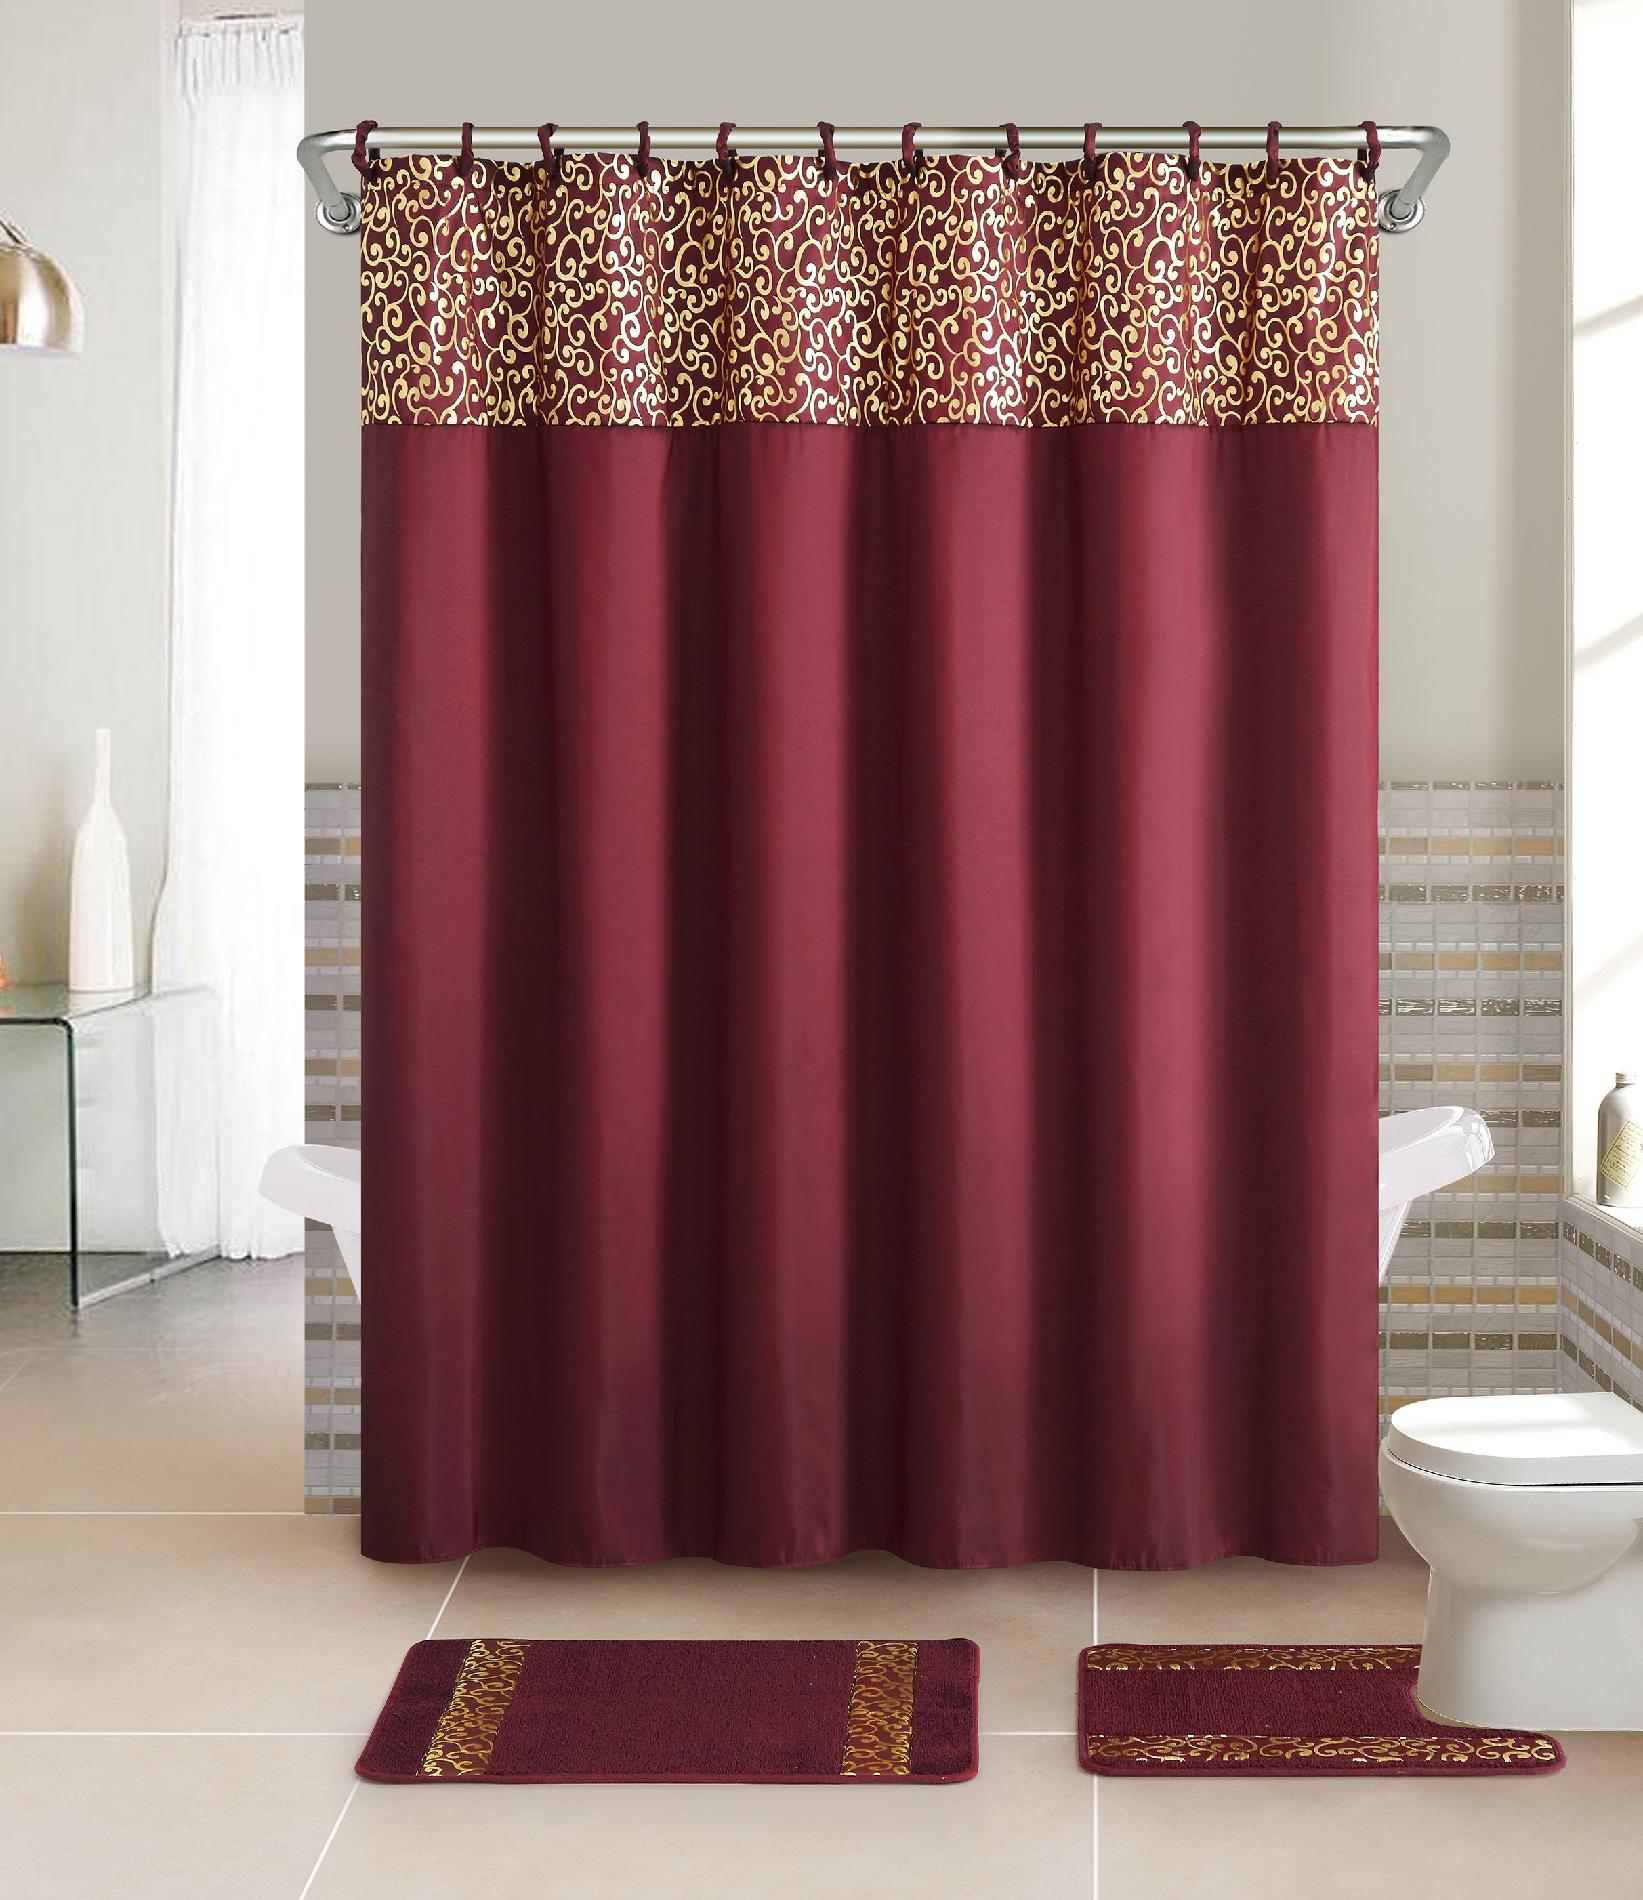 Captivating Essential Home 15 Piece Bath Set   Metalic Scroll Burgundy   Home   Bed U0026  Bath   Bath   Bathroom Accessories   Bath Accessories